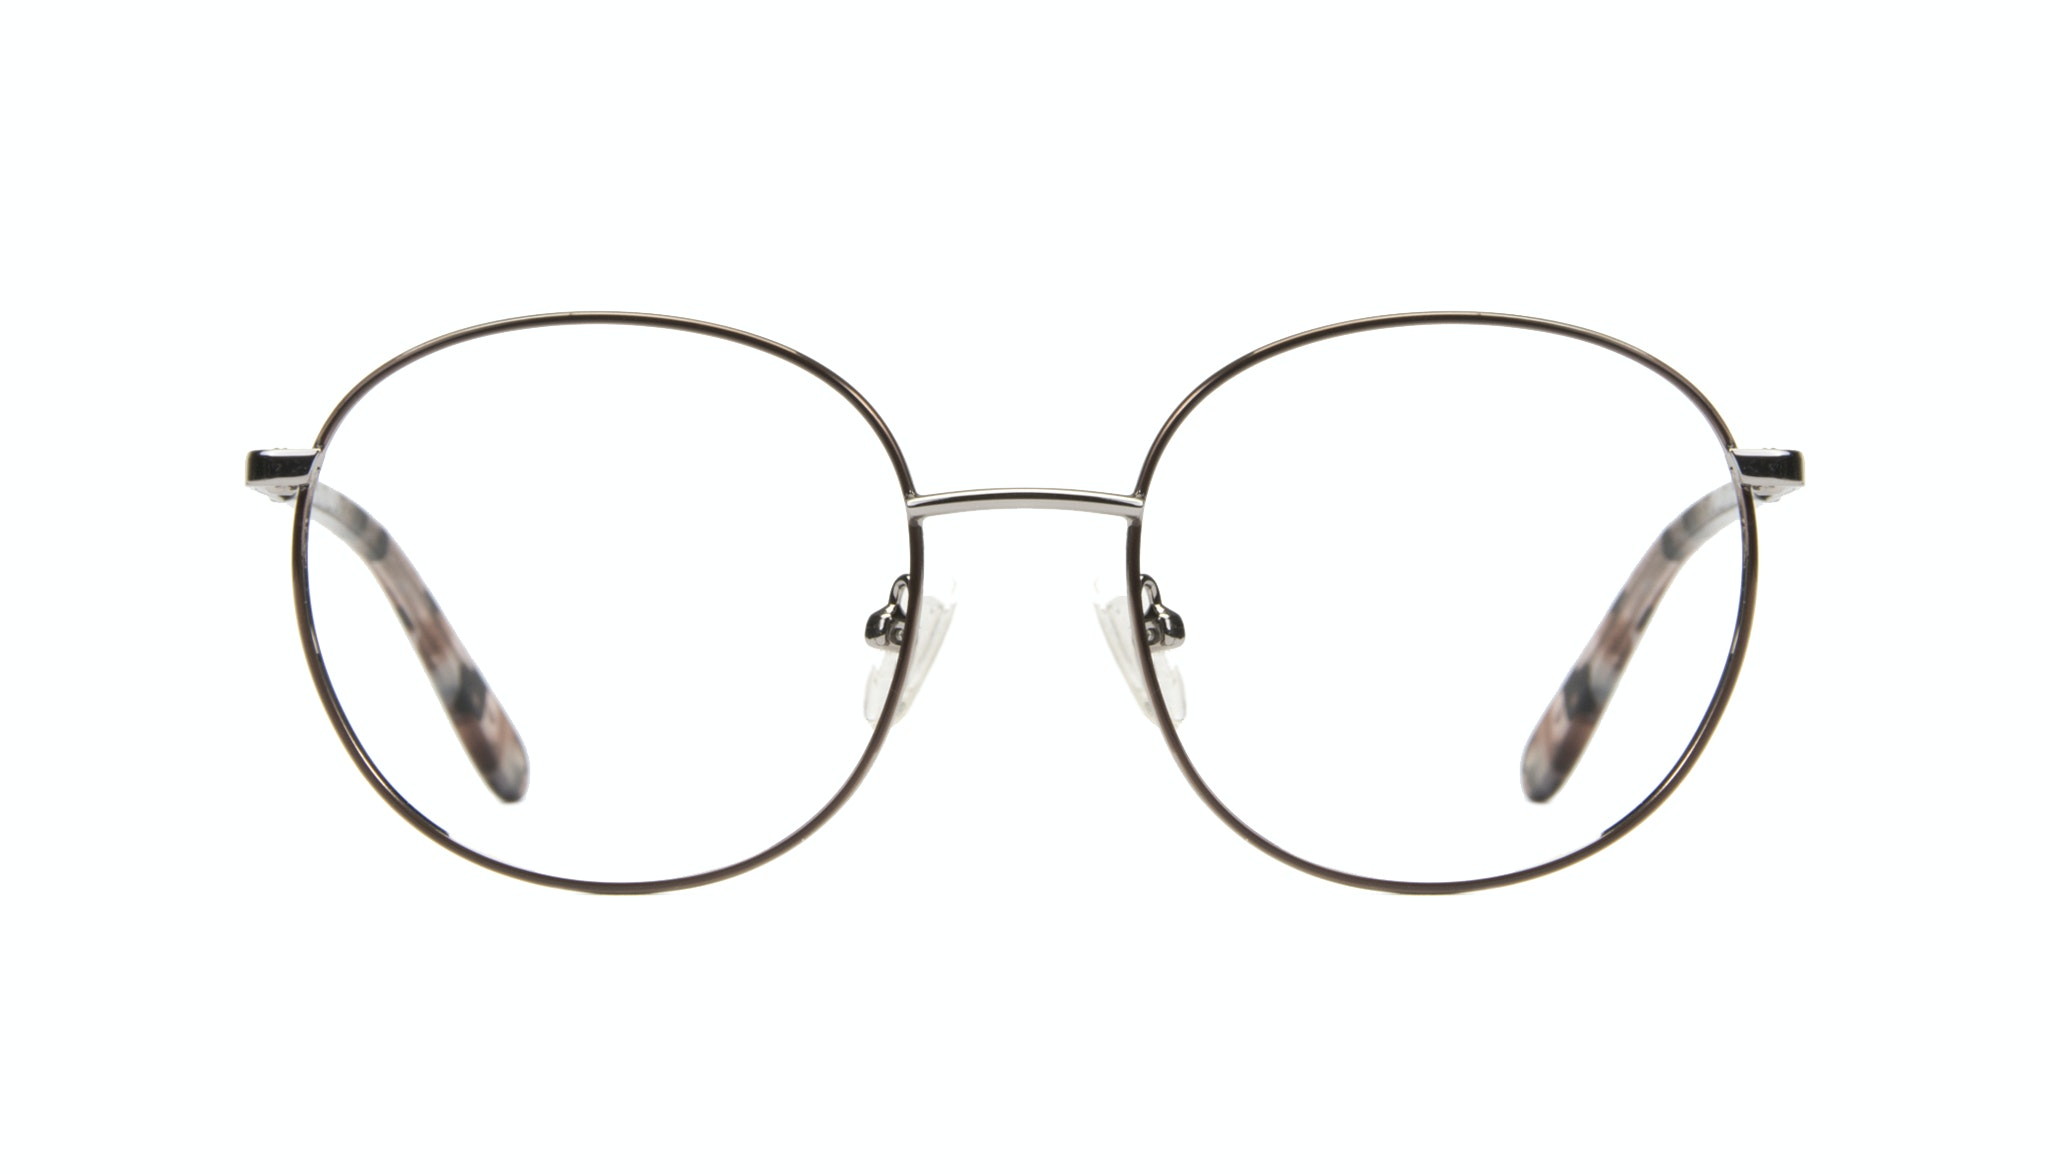 Affordable Fashion Glasses Round Eyeglasses Women Joy Rose Metal Front